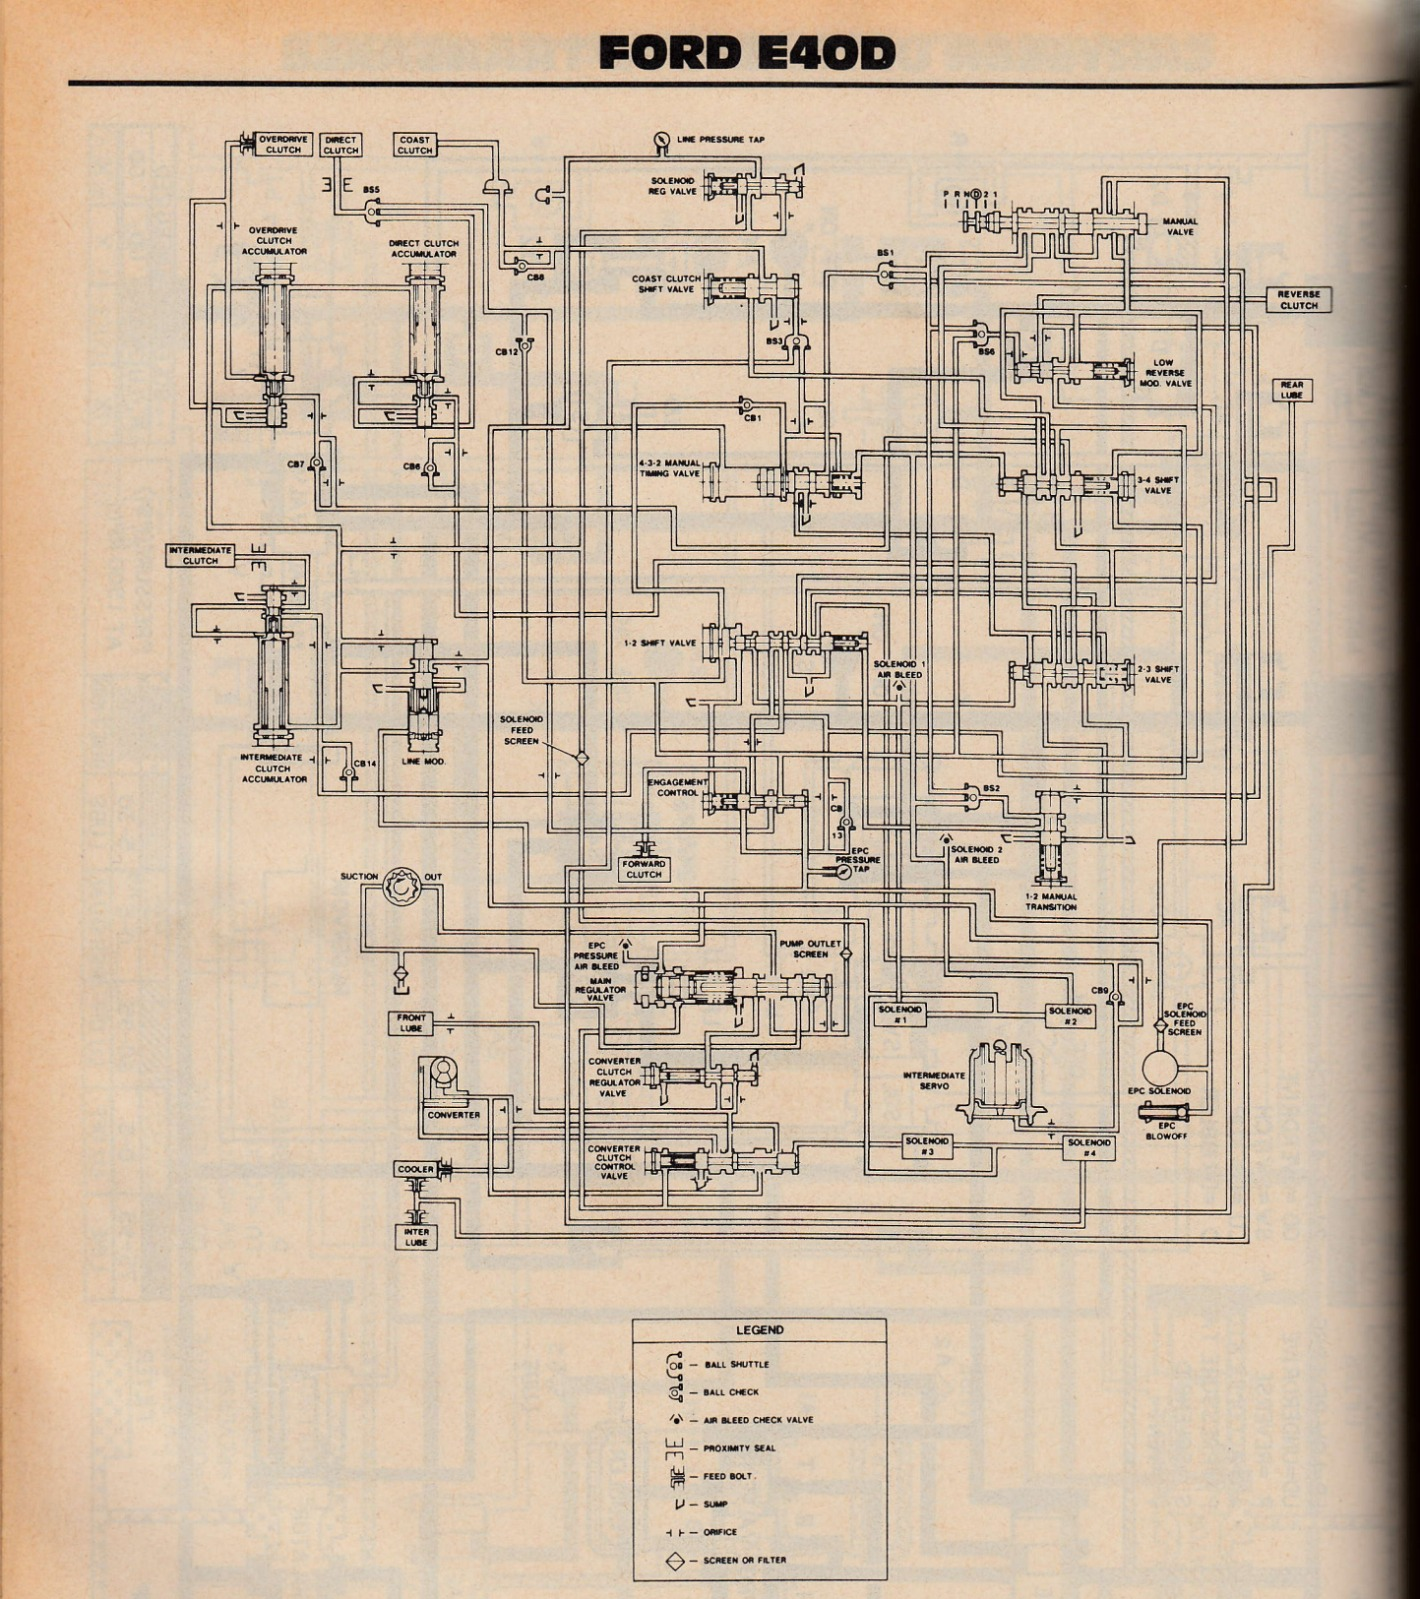 ford e4od transmission parts diagram e4od does intermediate band apply with no solenoid power  the  e4od does intermediate band apply with